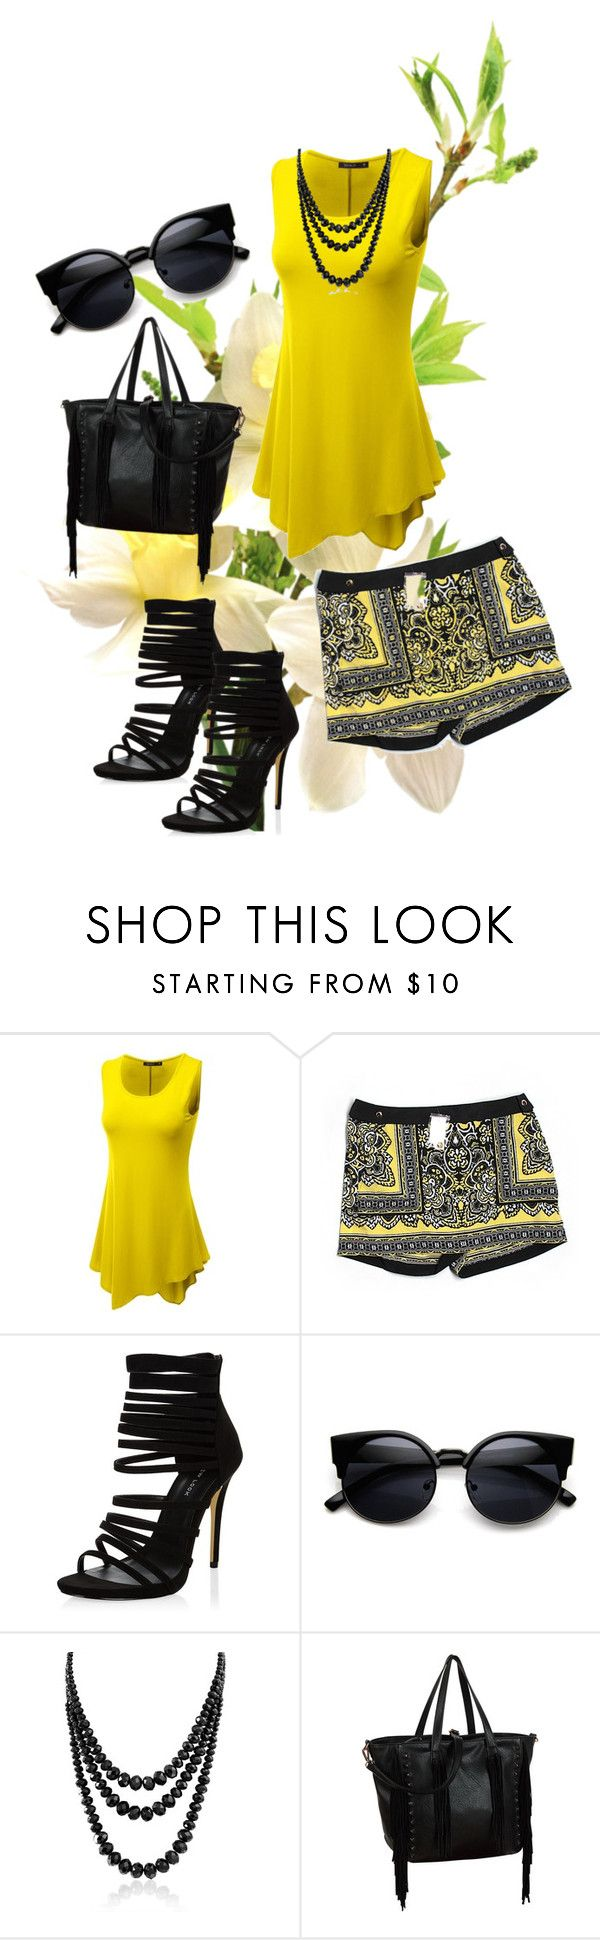 """""""Untitled #31"""" by reetta-v on Polyvore featuring Doublju, Caché, Bling Jewelry and Melie Bianco"""